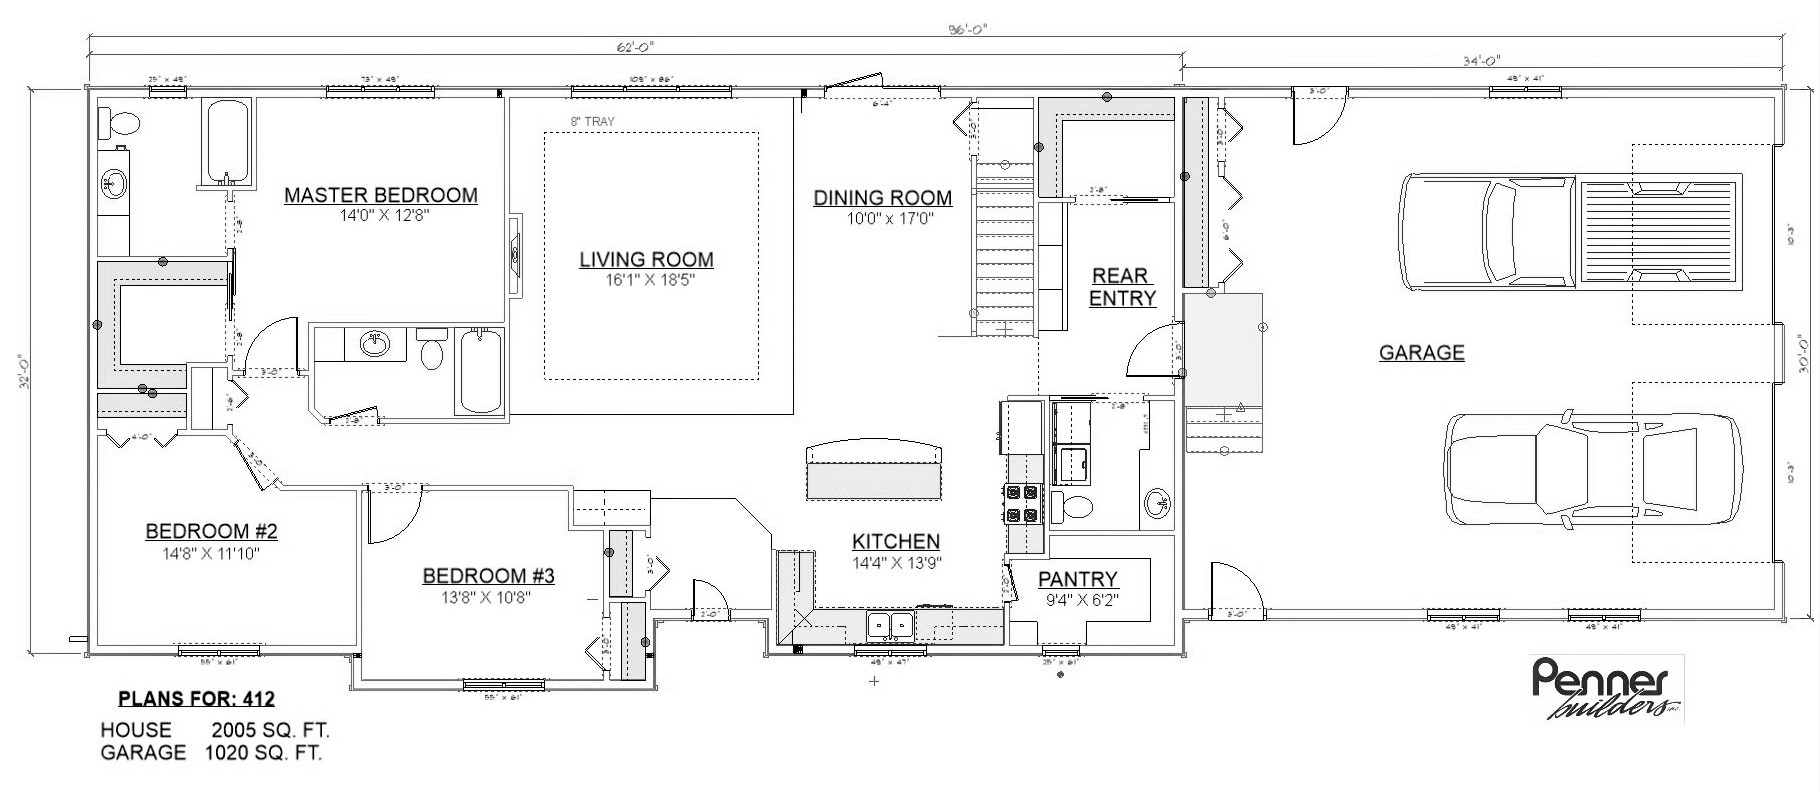 Penner Homes Floor Plan Id: 412